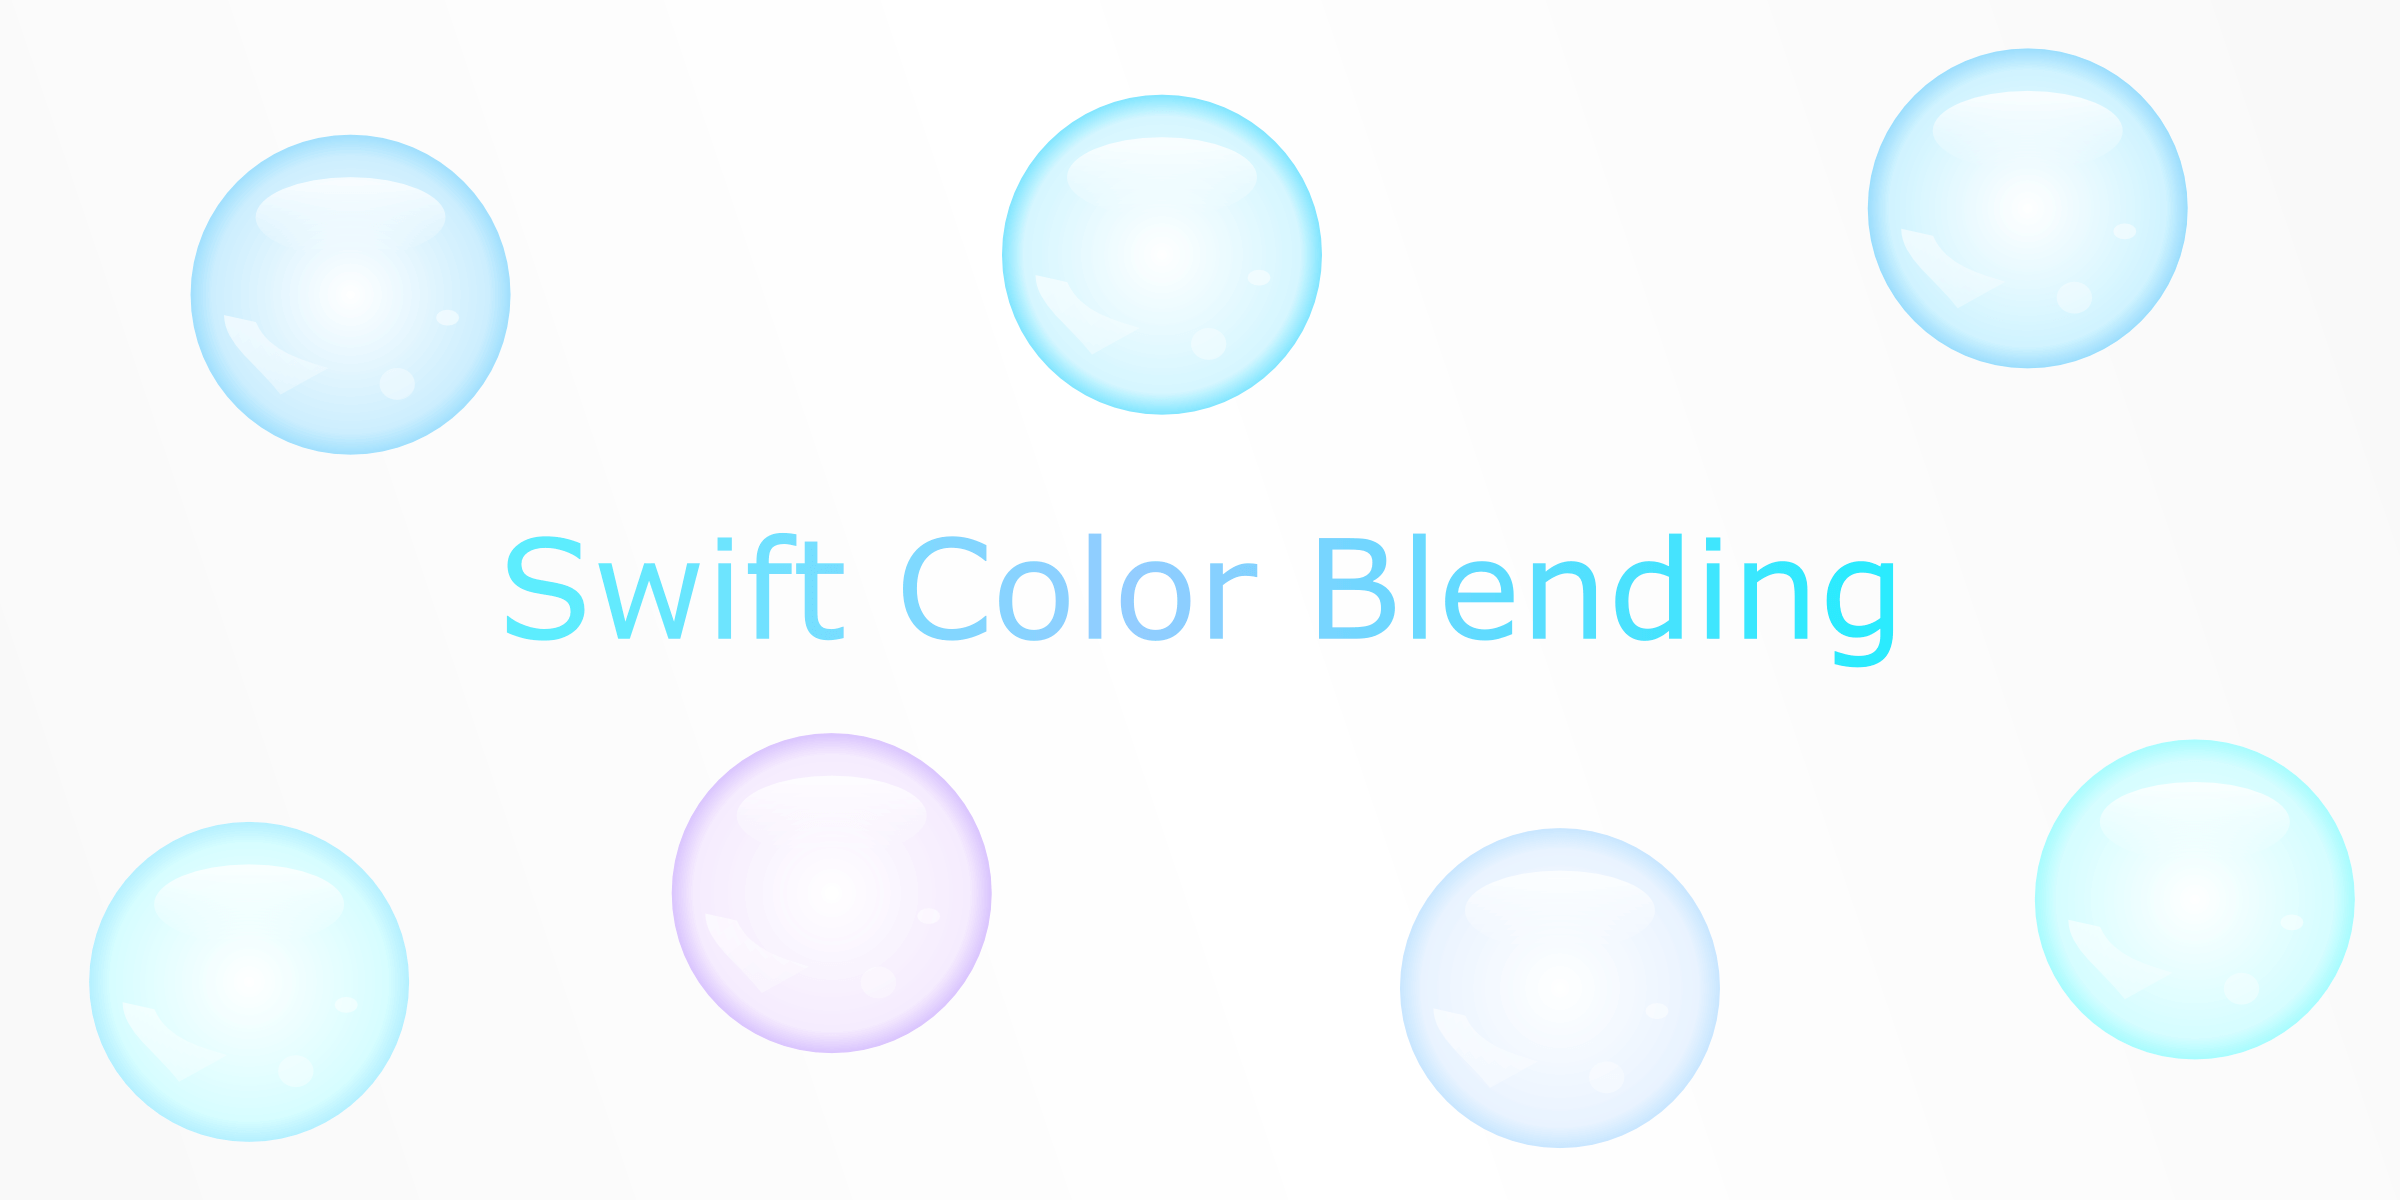 How to Create a Stream of Colorful Bubbles using a Blend Overlay in